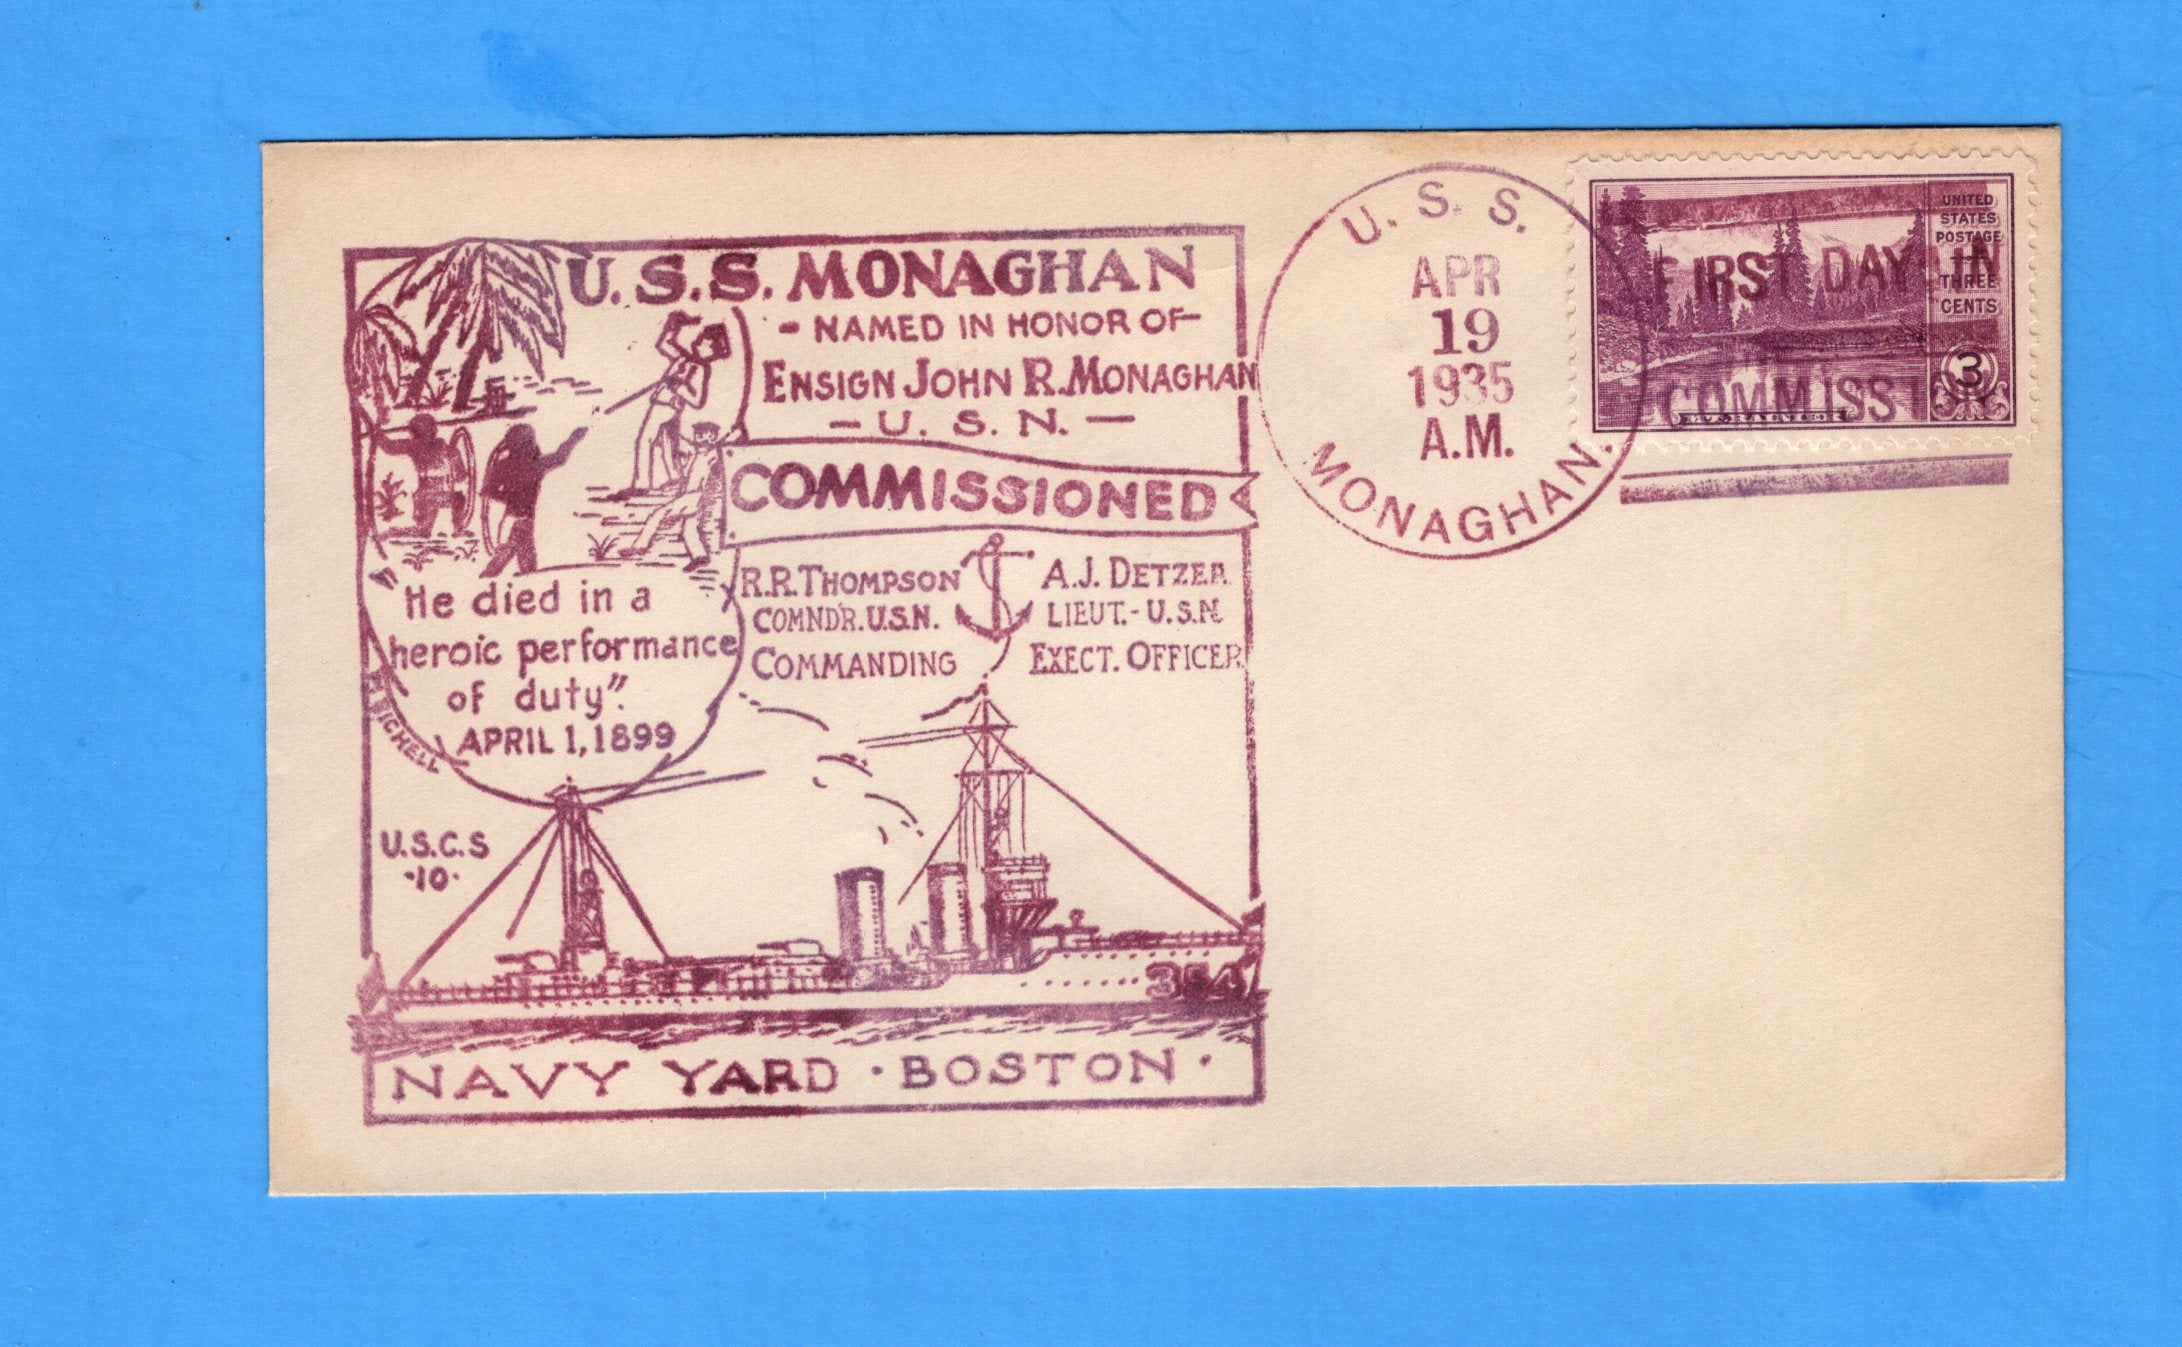 USS Monaghan DD-354 Commissioned April 19, 1935